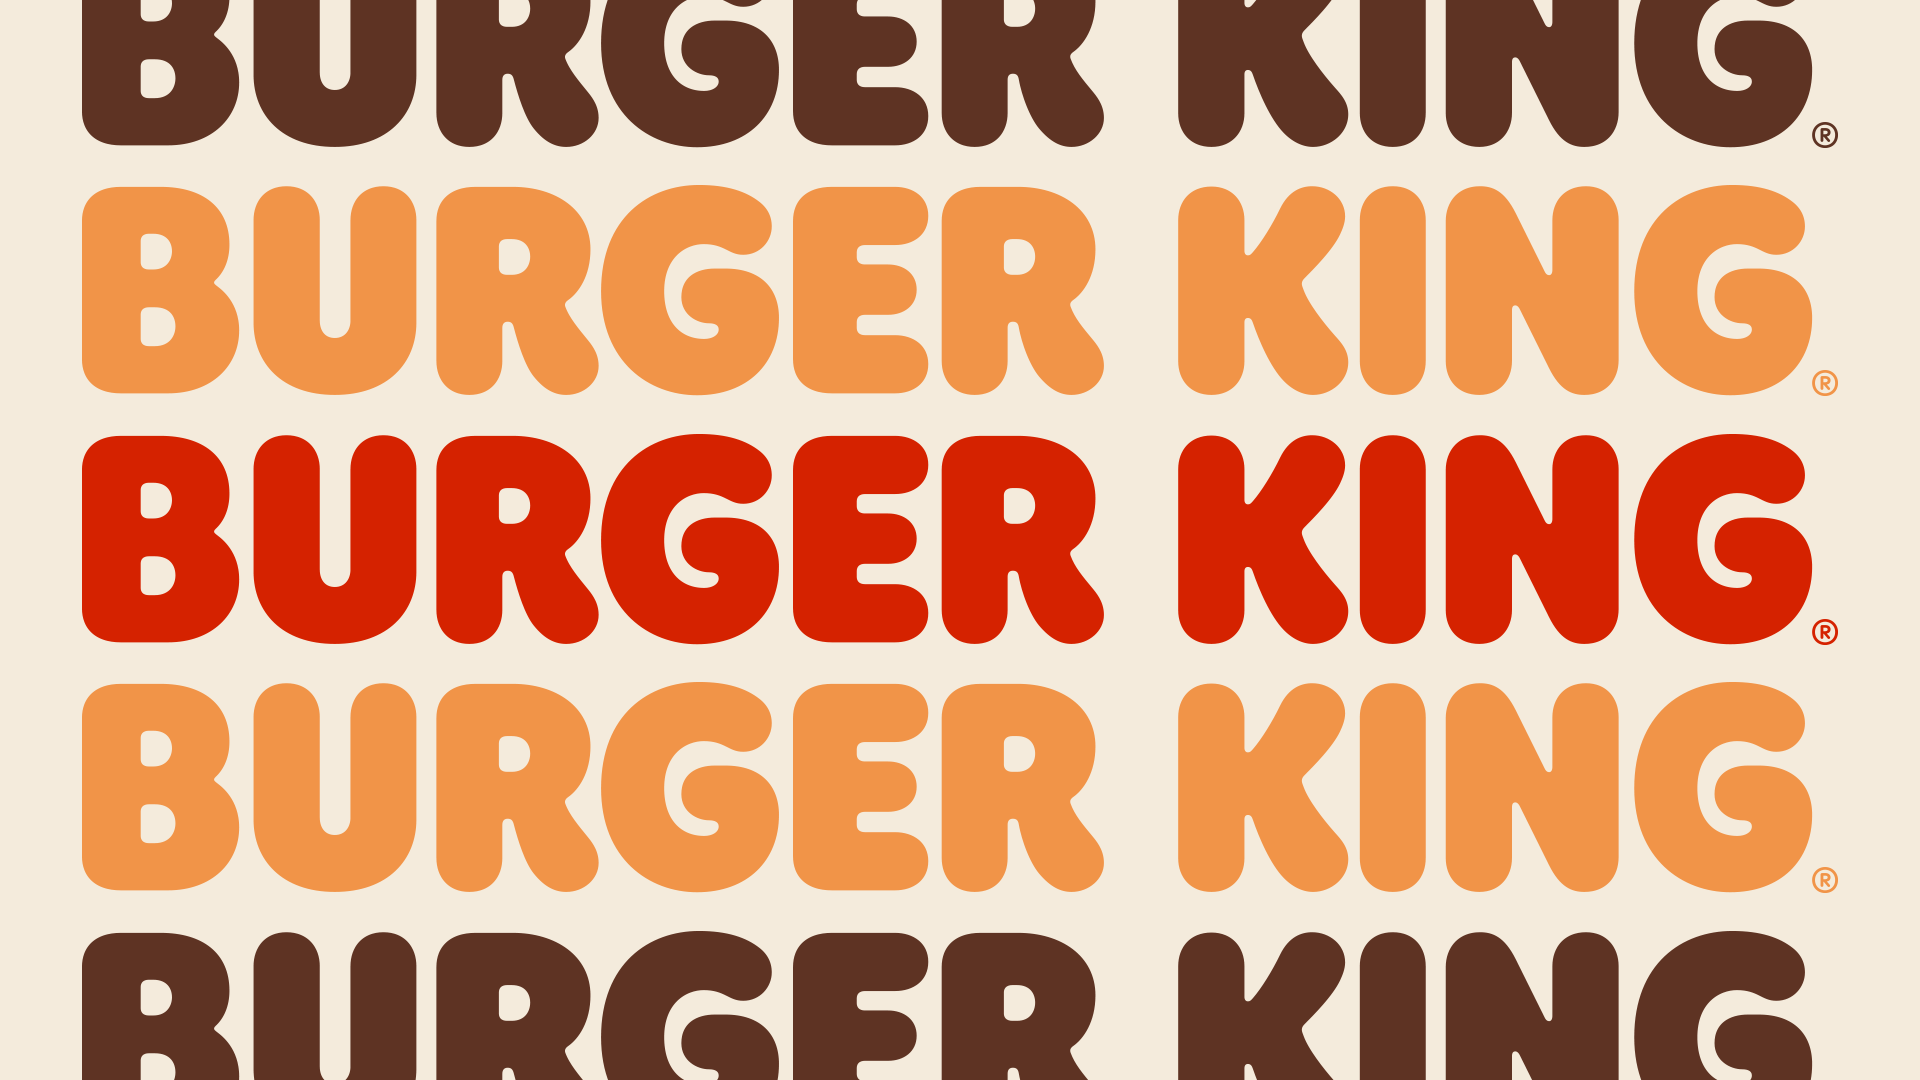 The words Burger King repeated in orange shades